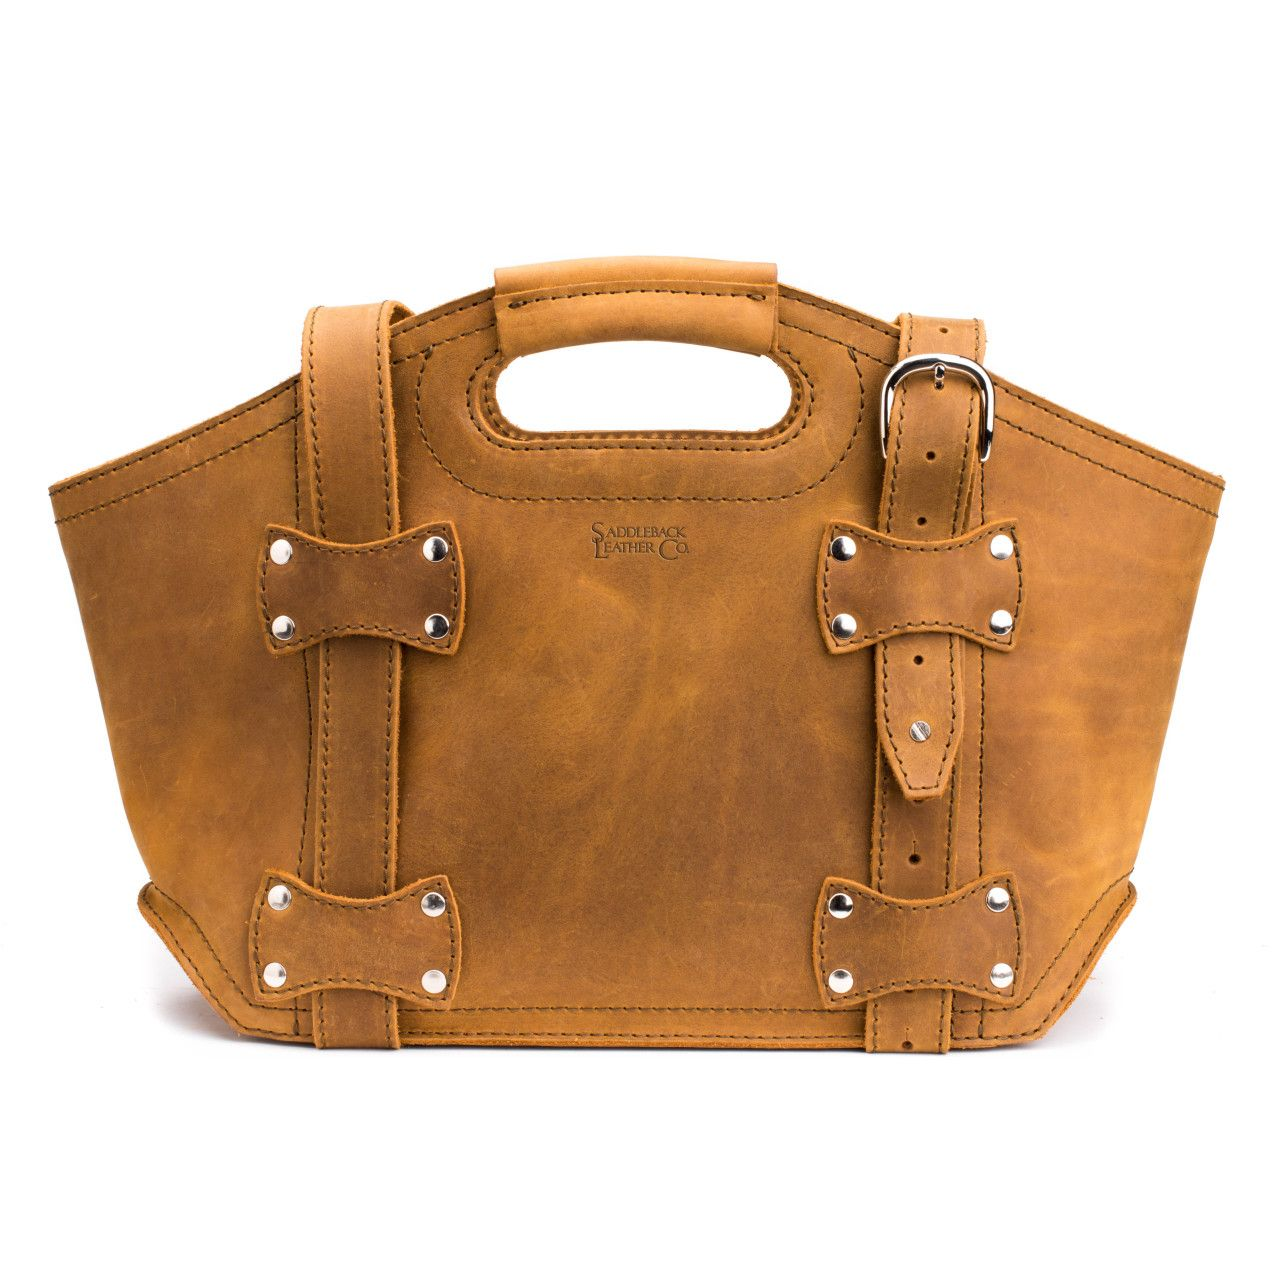 premium leather tote bag small in tobacco leather